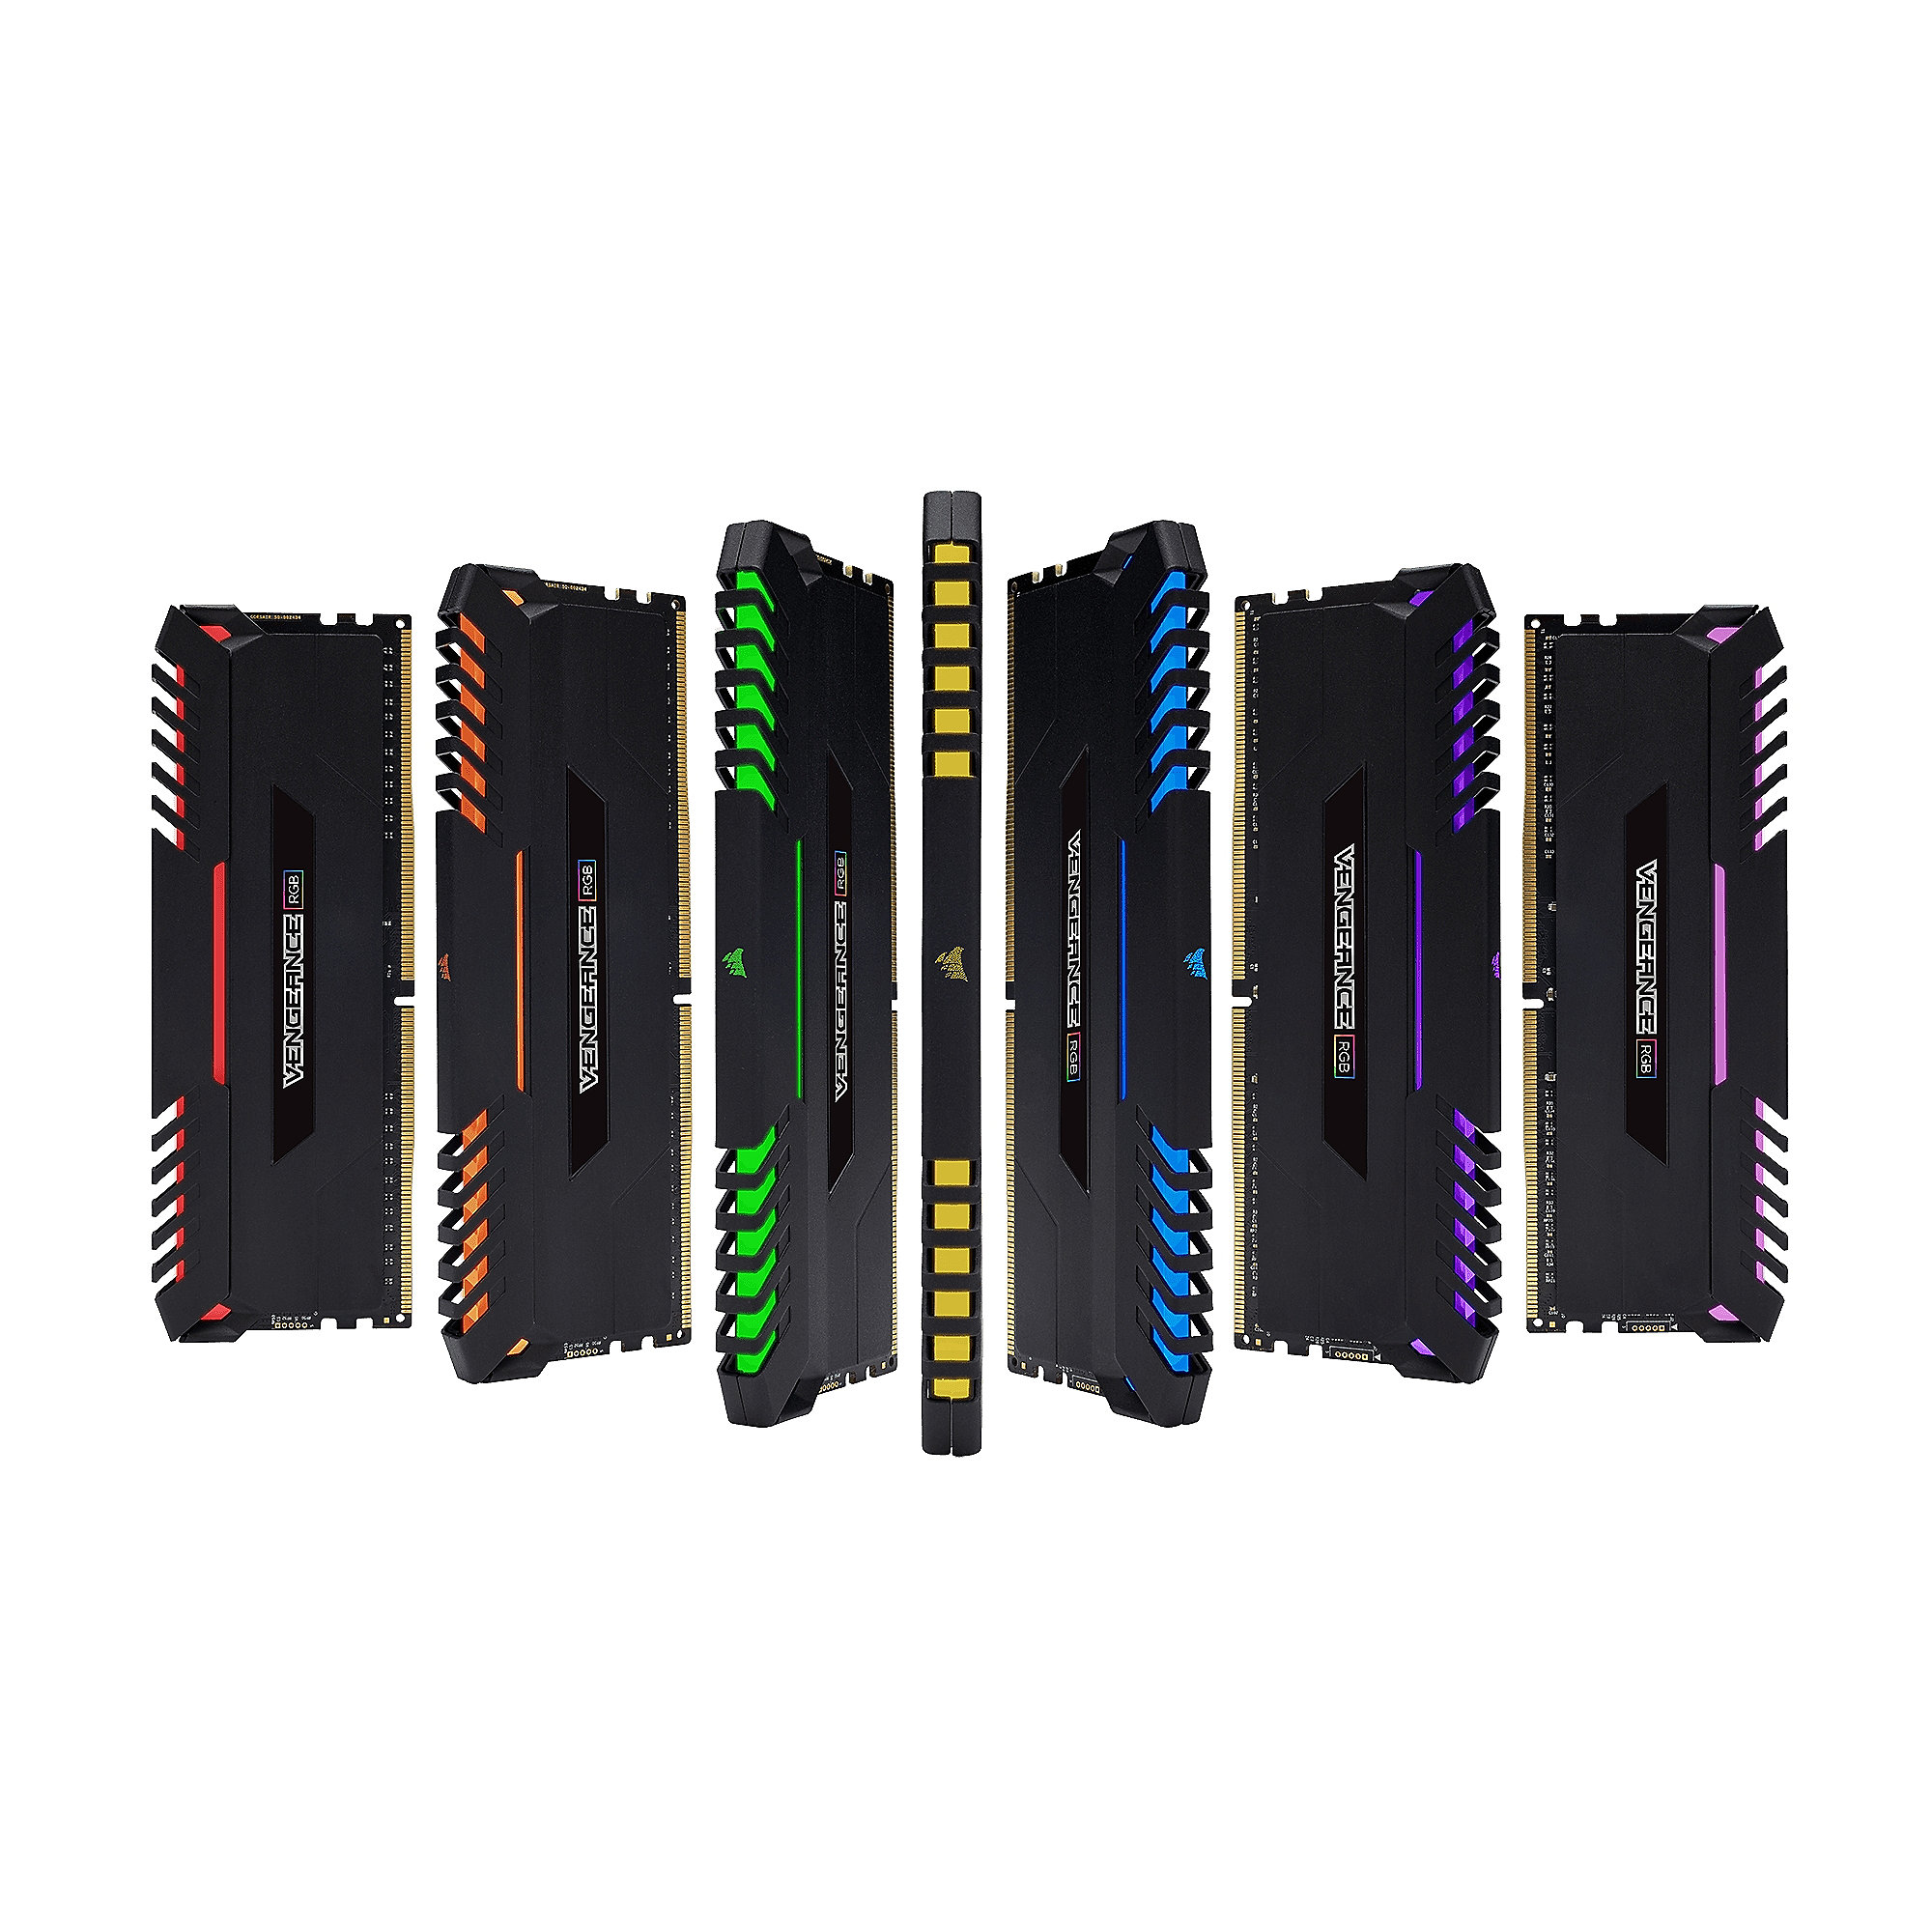 32GB (4x8GB) Corsair Vengeance RGB DDR4-2666 RAM CL16 (16-18-18-35) Kit